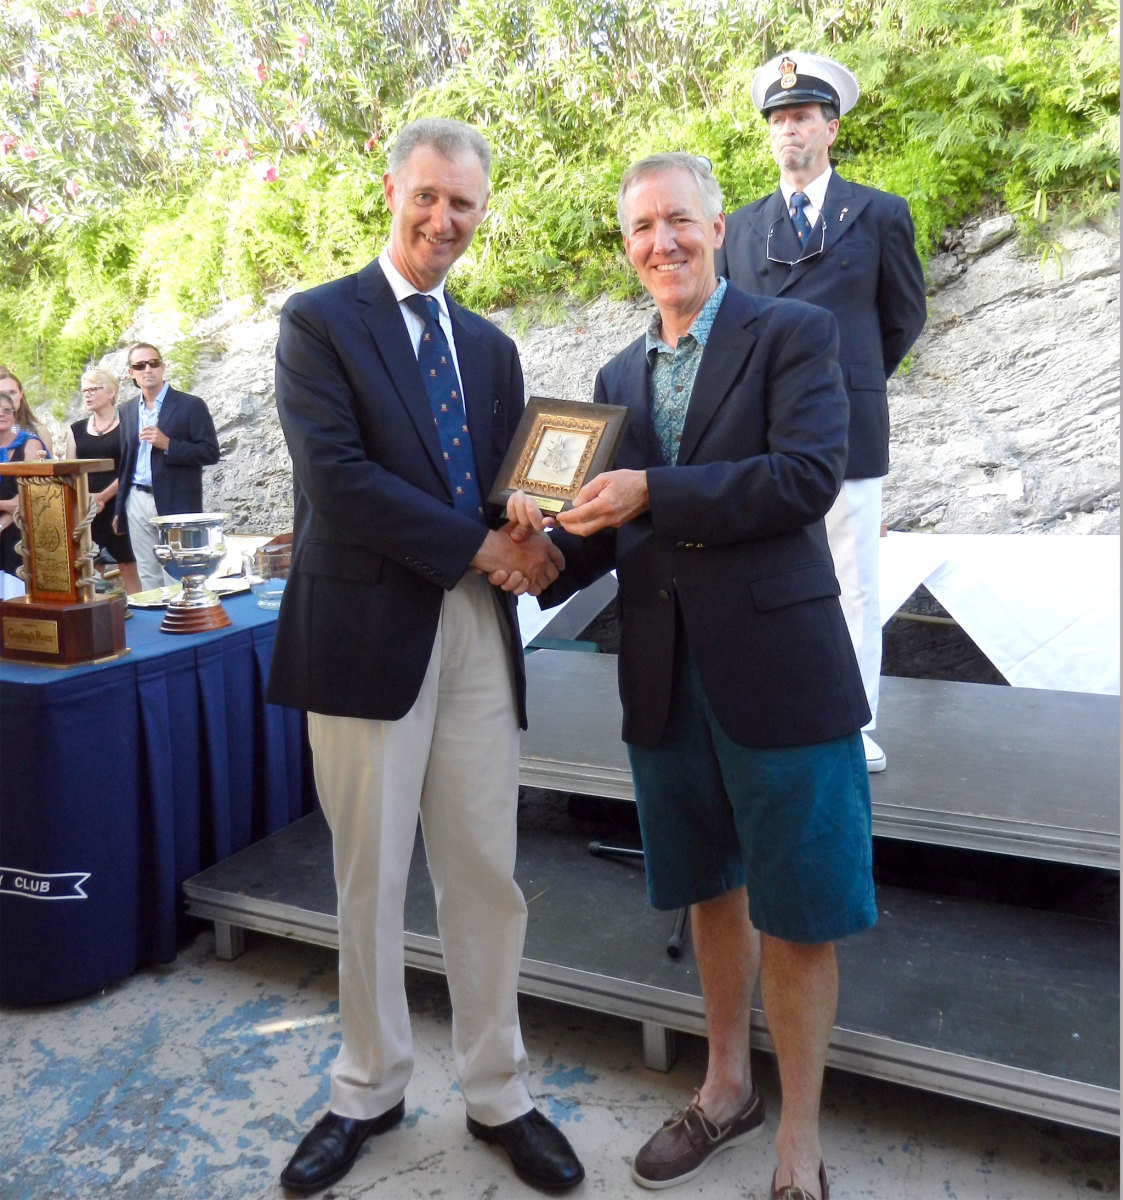 Author receiving his Navigator's award from the Governor of Bermuda